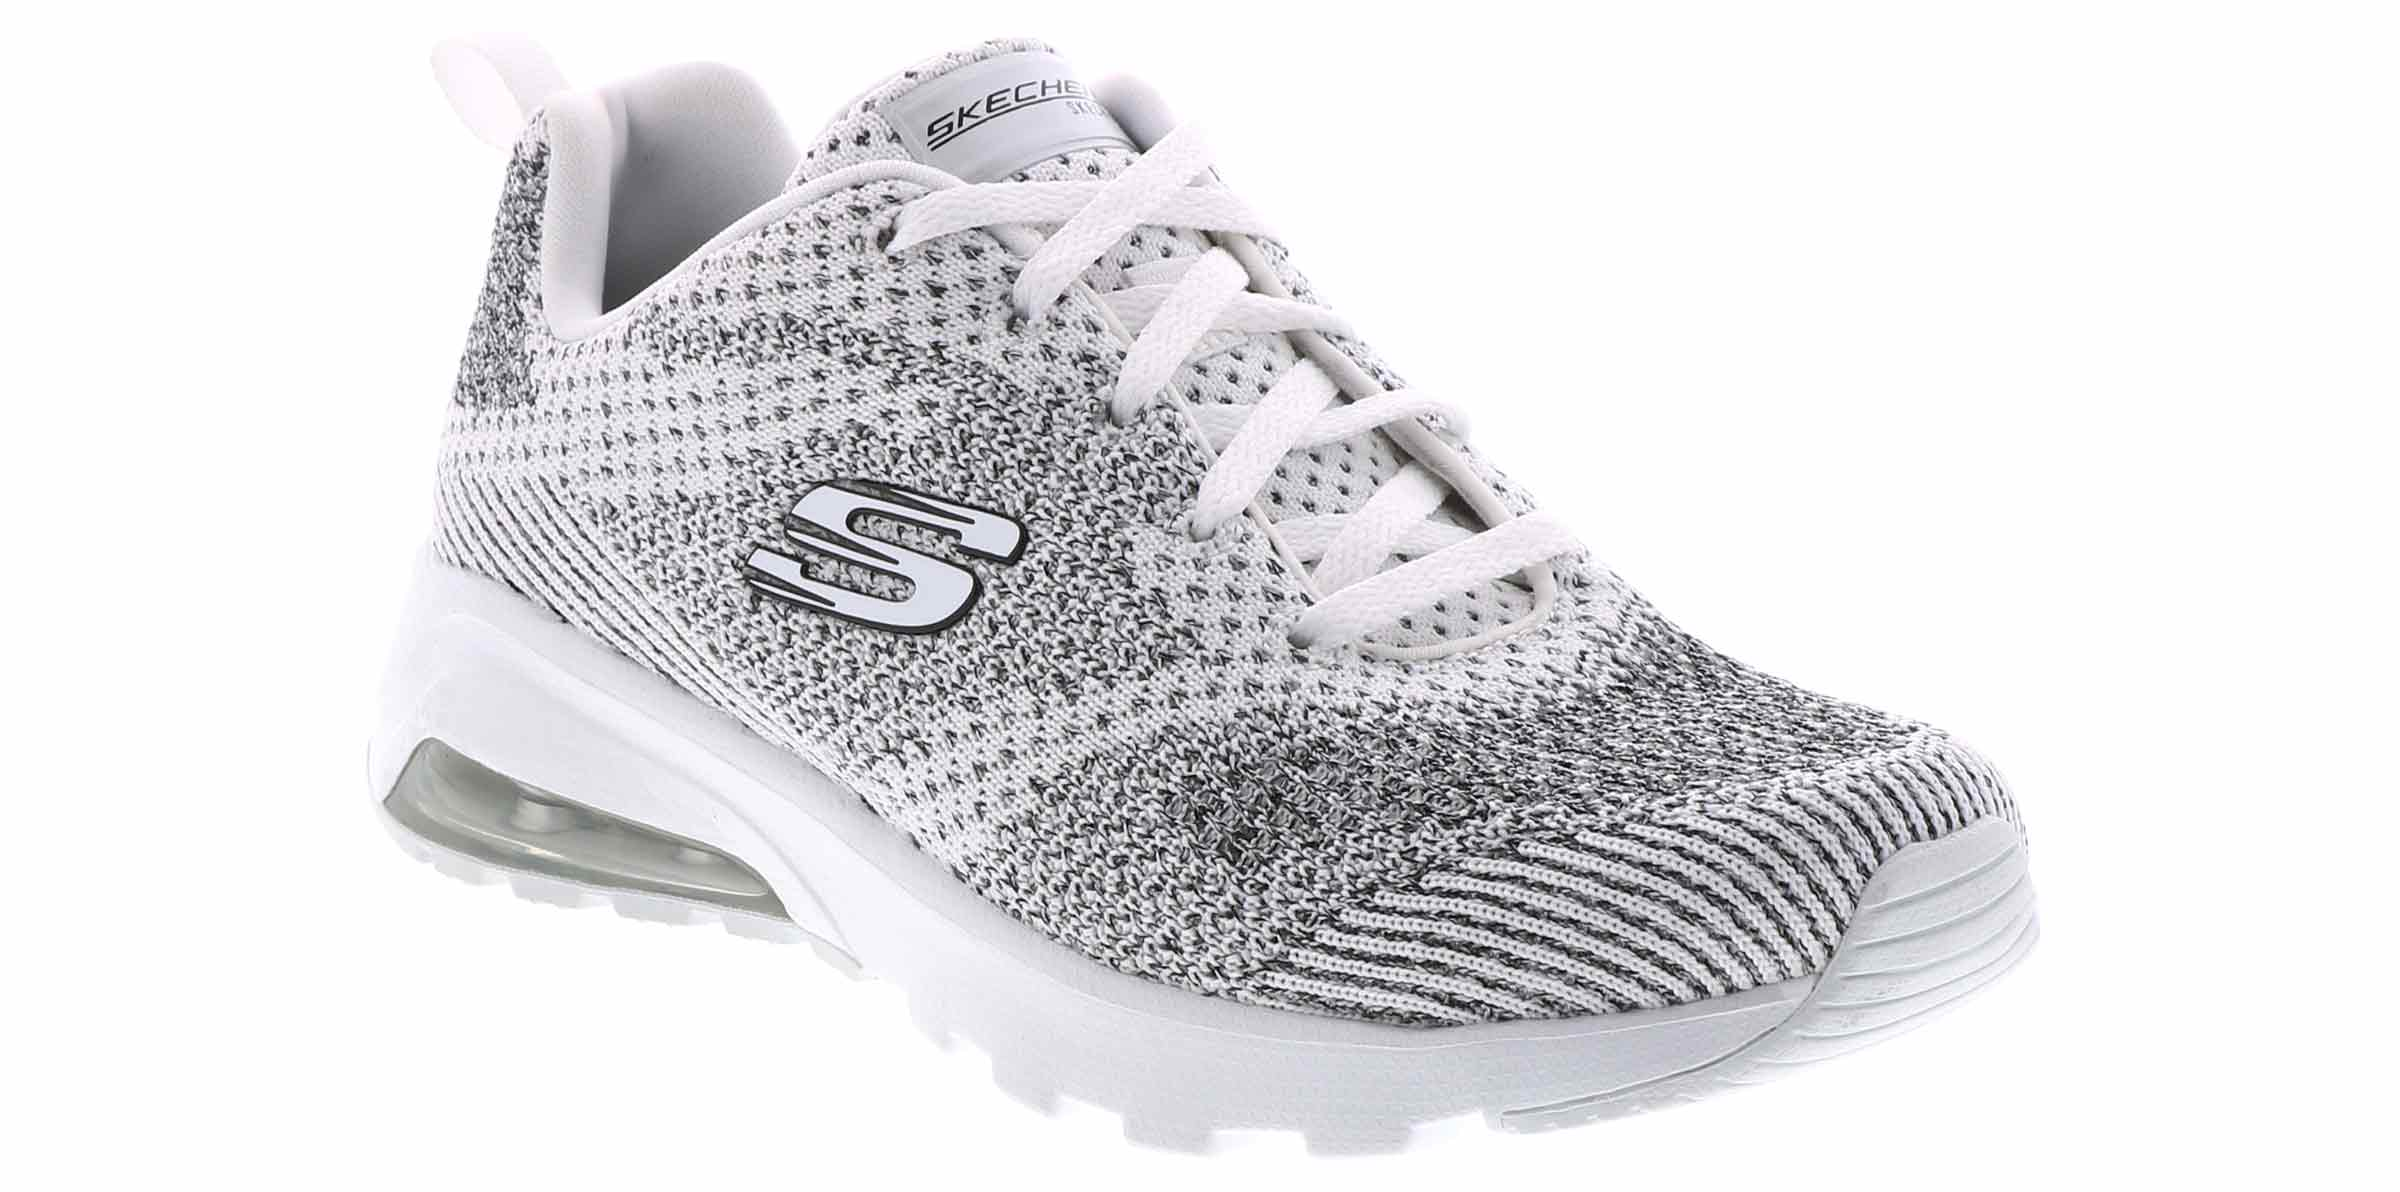 skechers air extreme